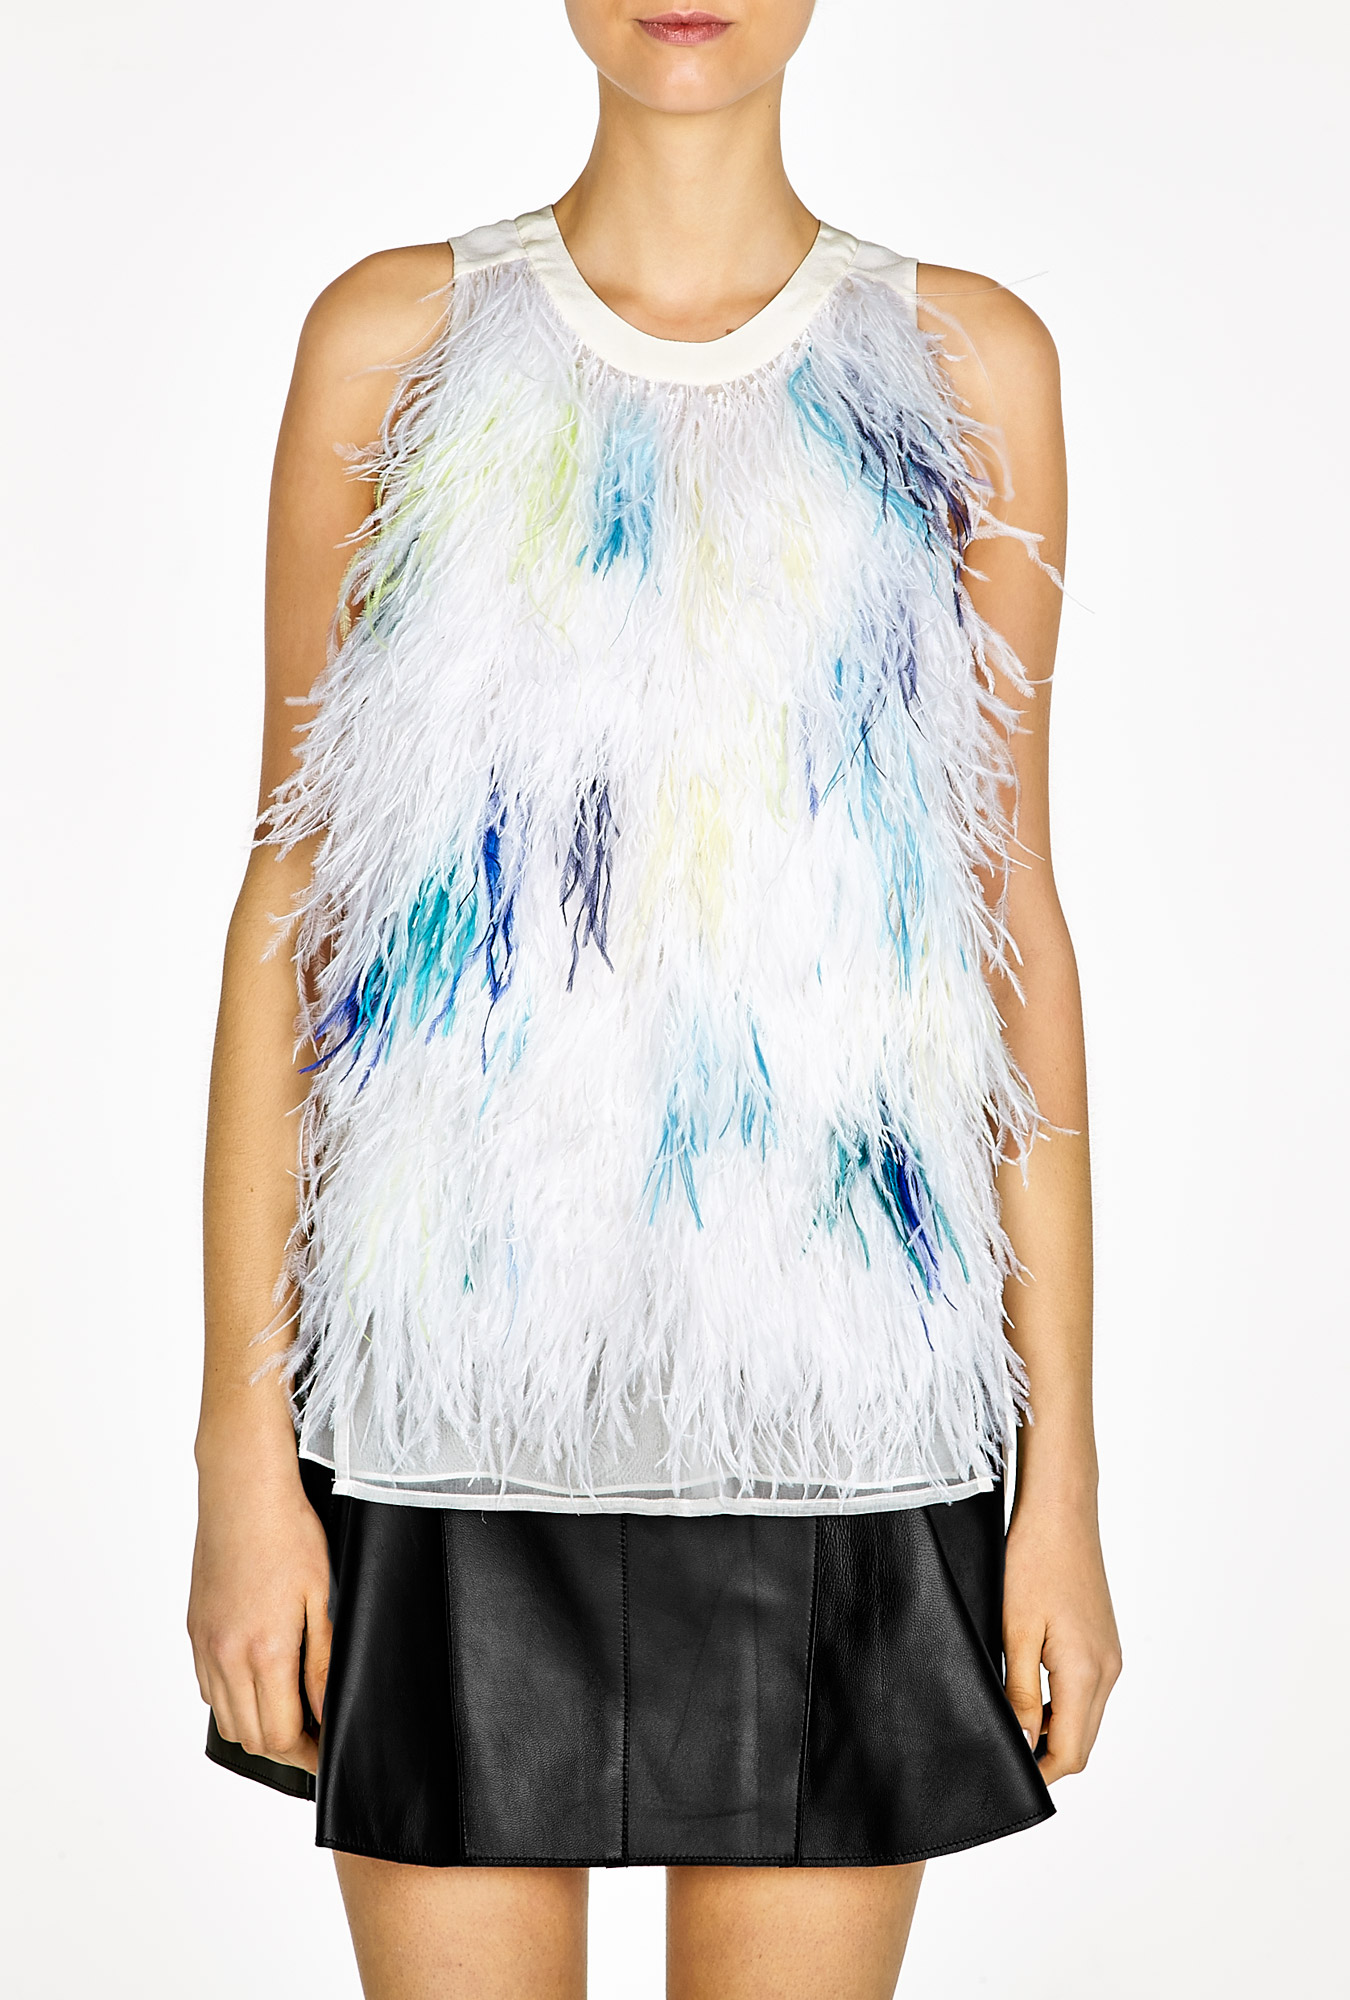 3.1 Phillip Lim  | Ostrich Feathers Tank Top by 3.1 Phillip Lim